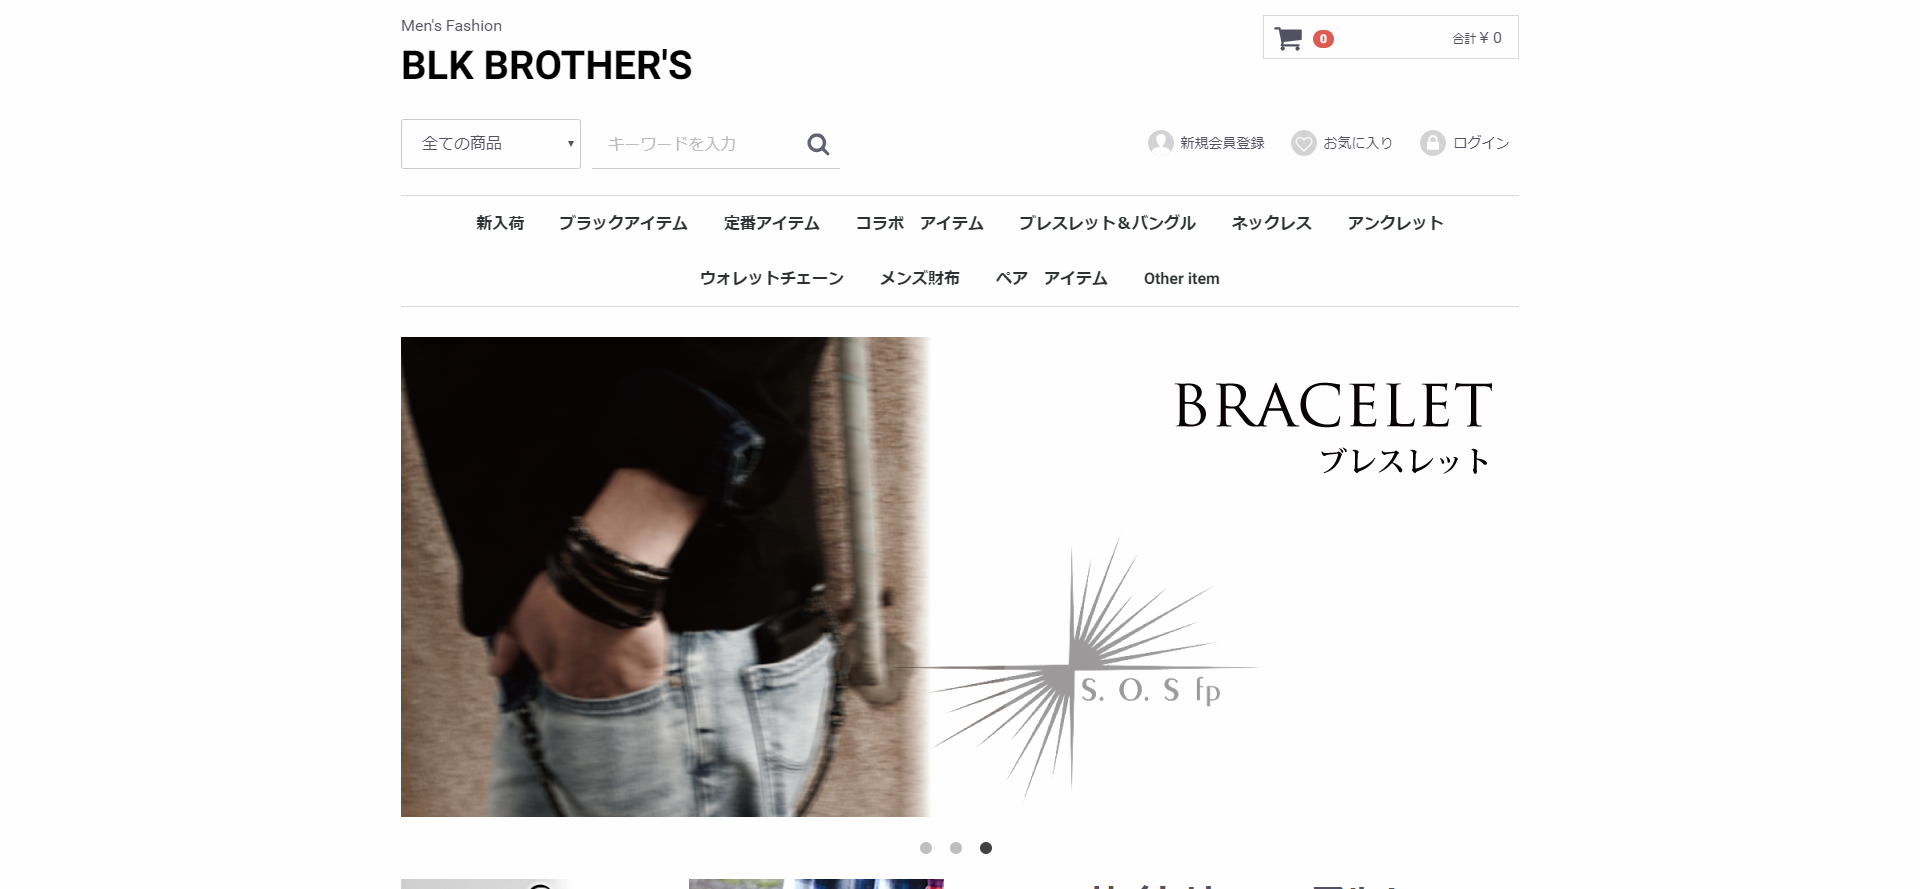 Men's Fashion BLK BROTHER'S